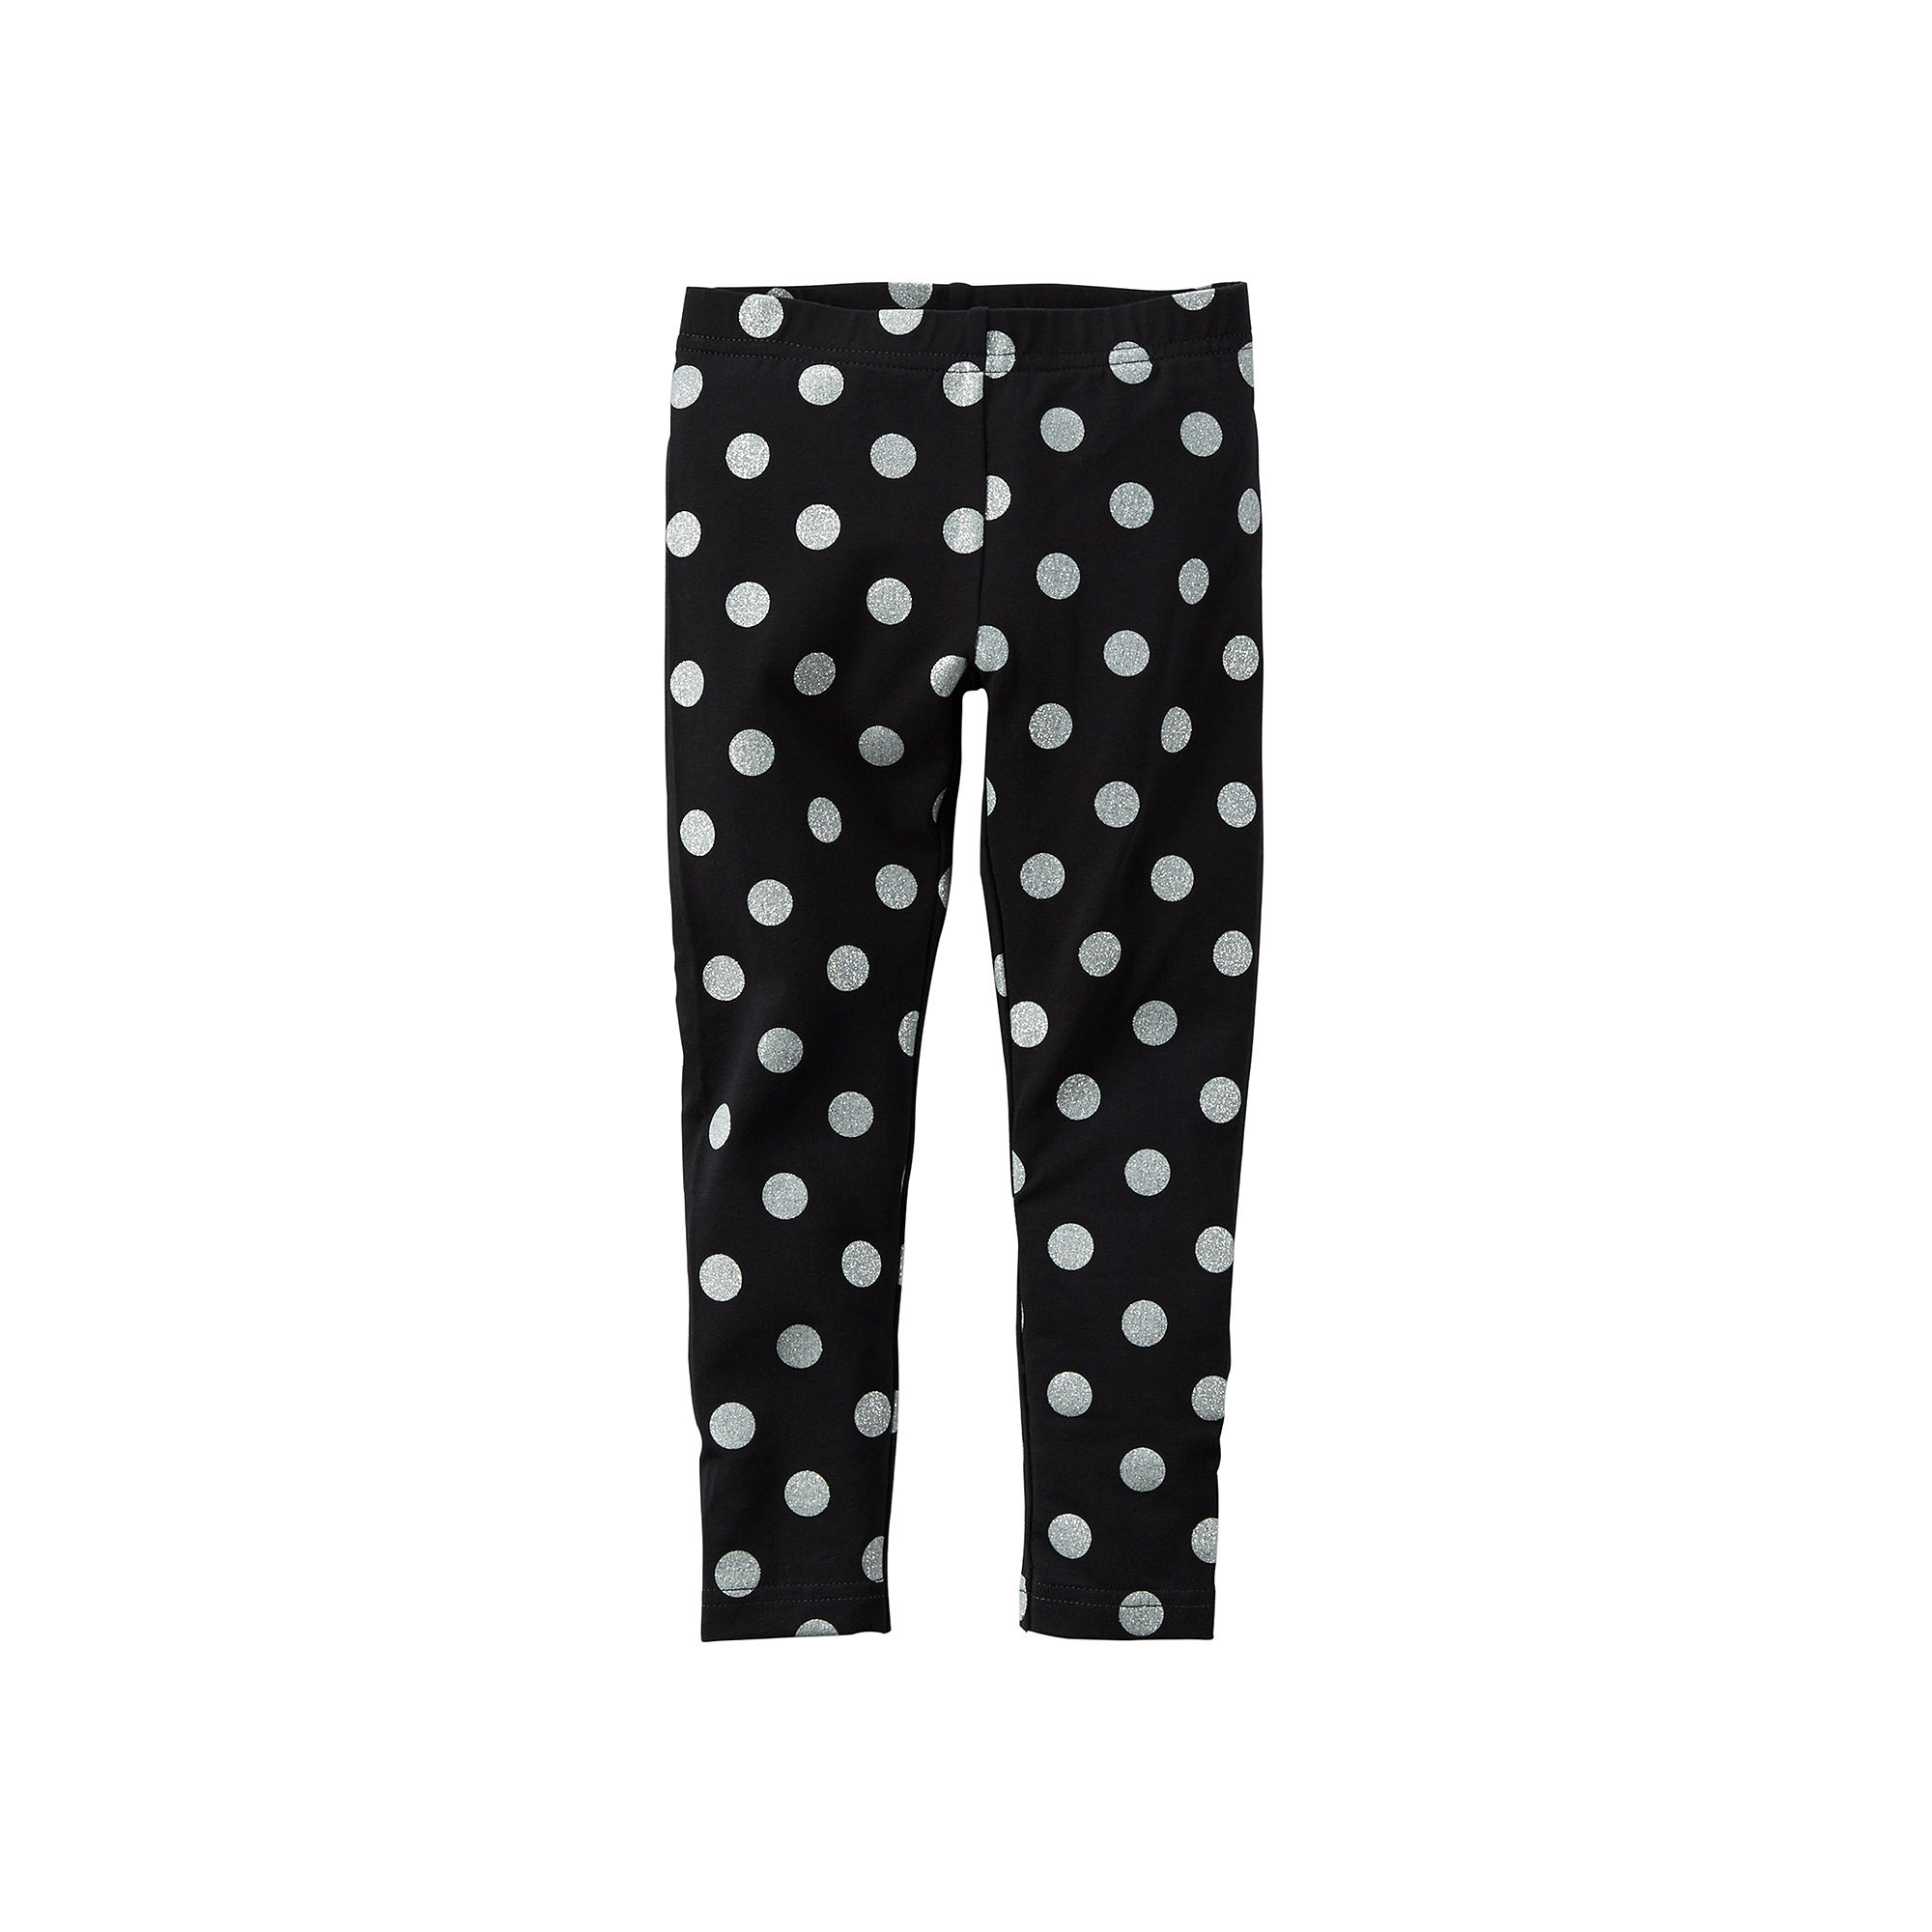 UPC 888510875048 product image for Carter s Polka Dot Leggings - Toddler  Girls 2t-5t ... 7c1224bd9